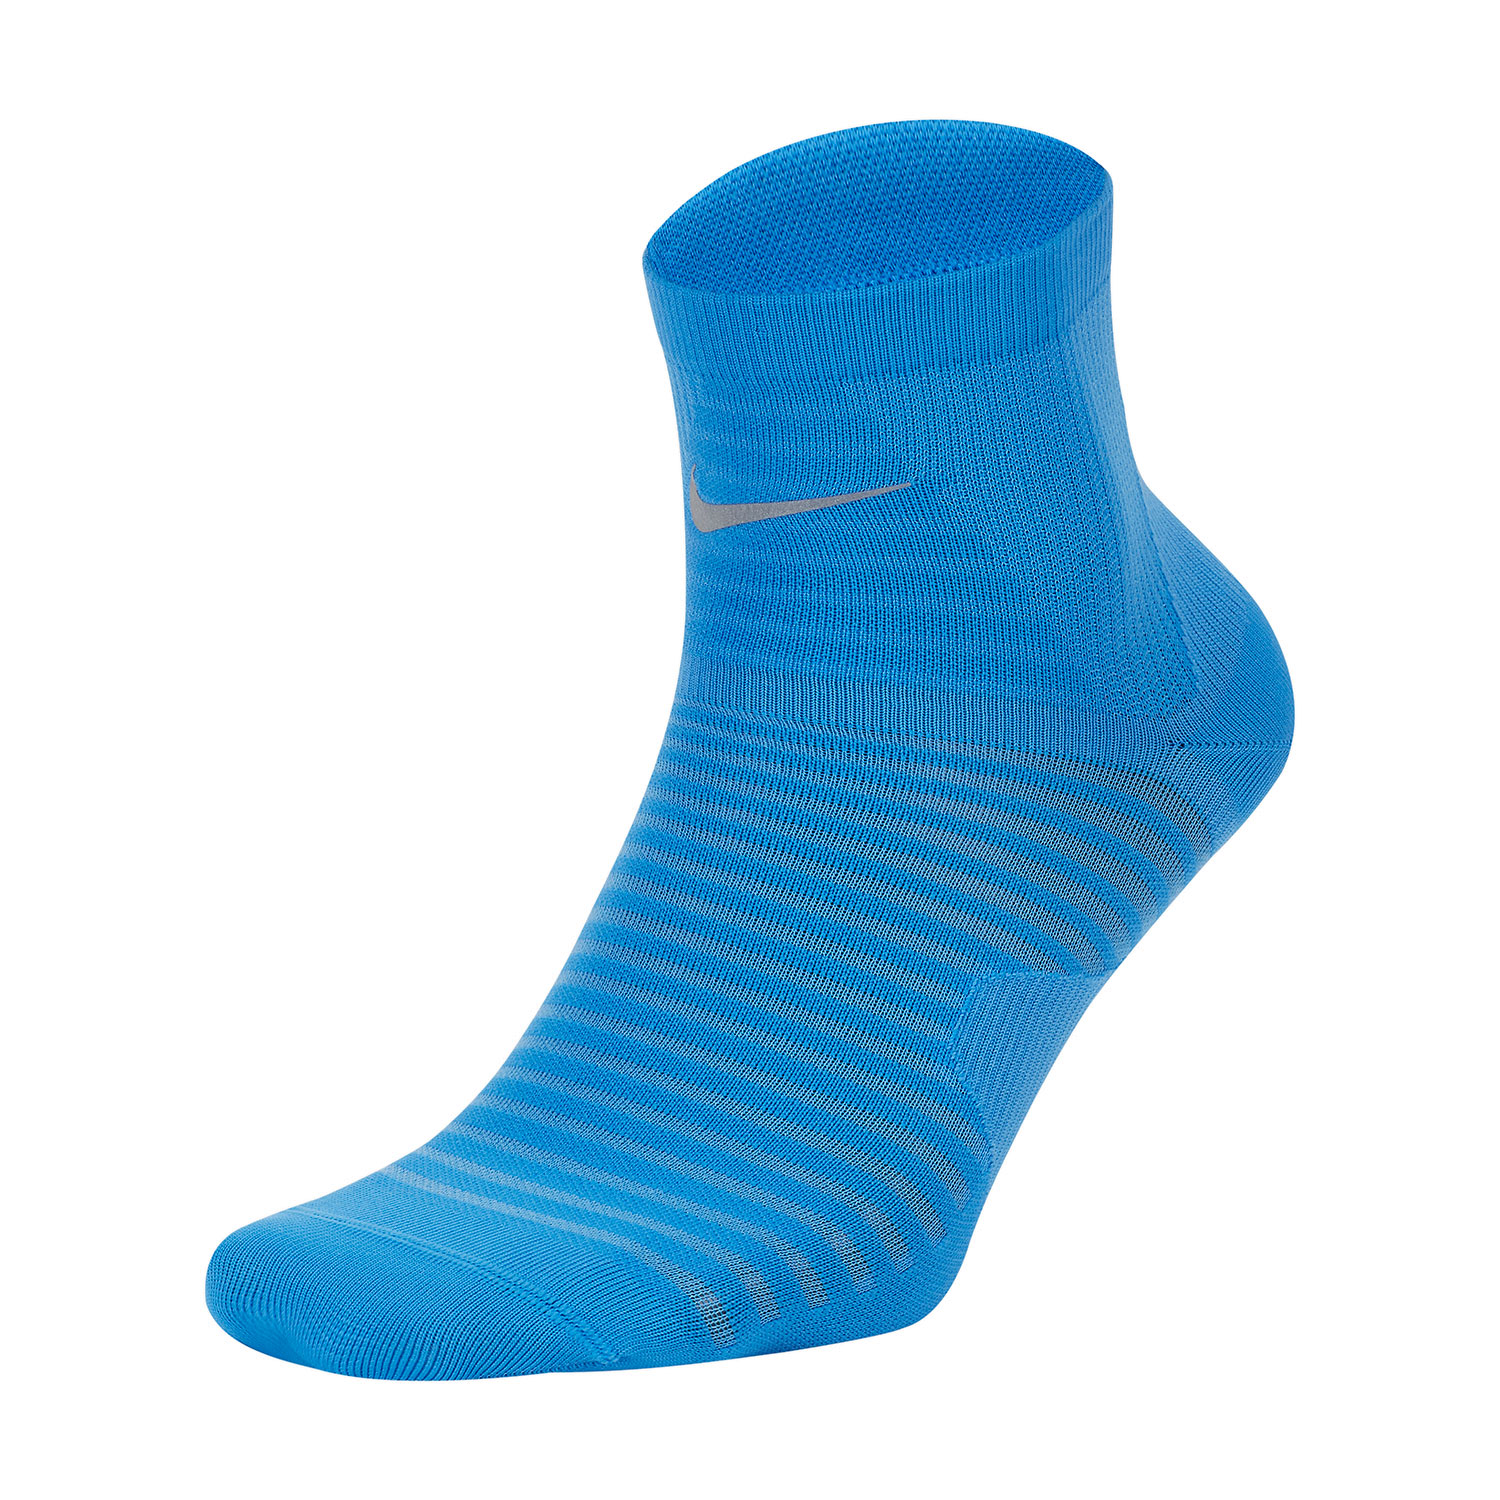 Nike Spark Lightweight Socks - Pacific Blue/Reflective